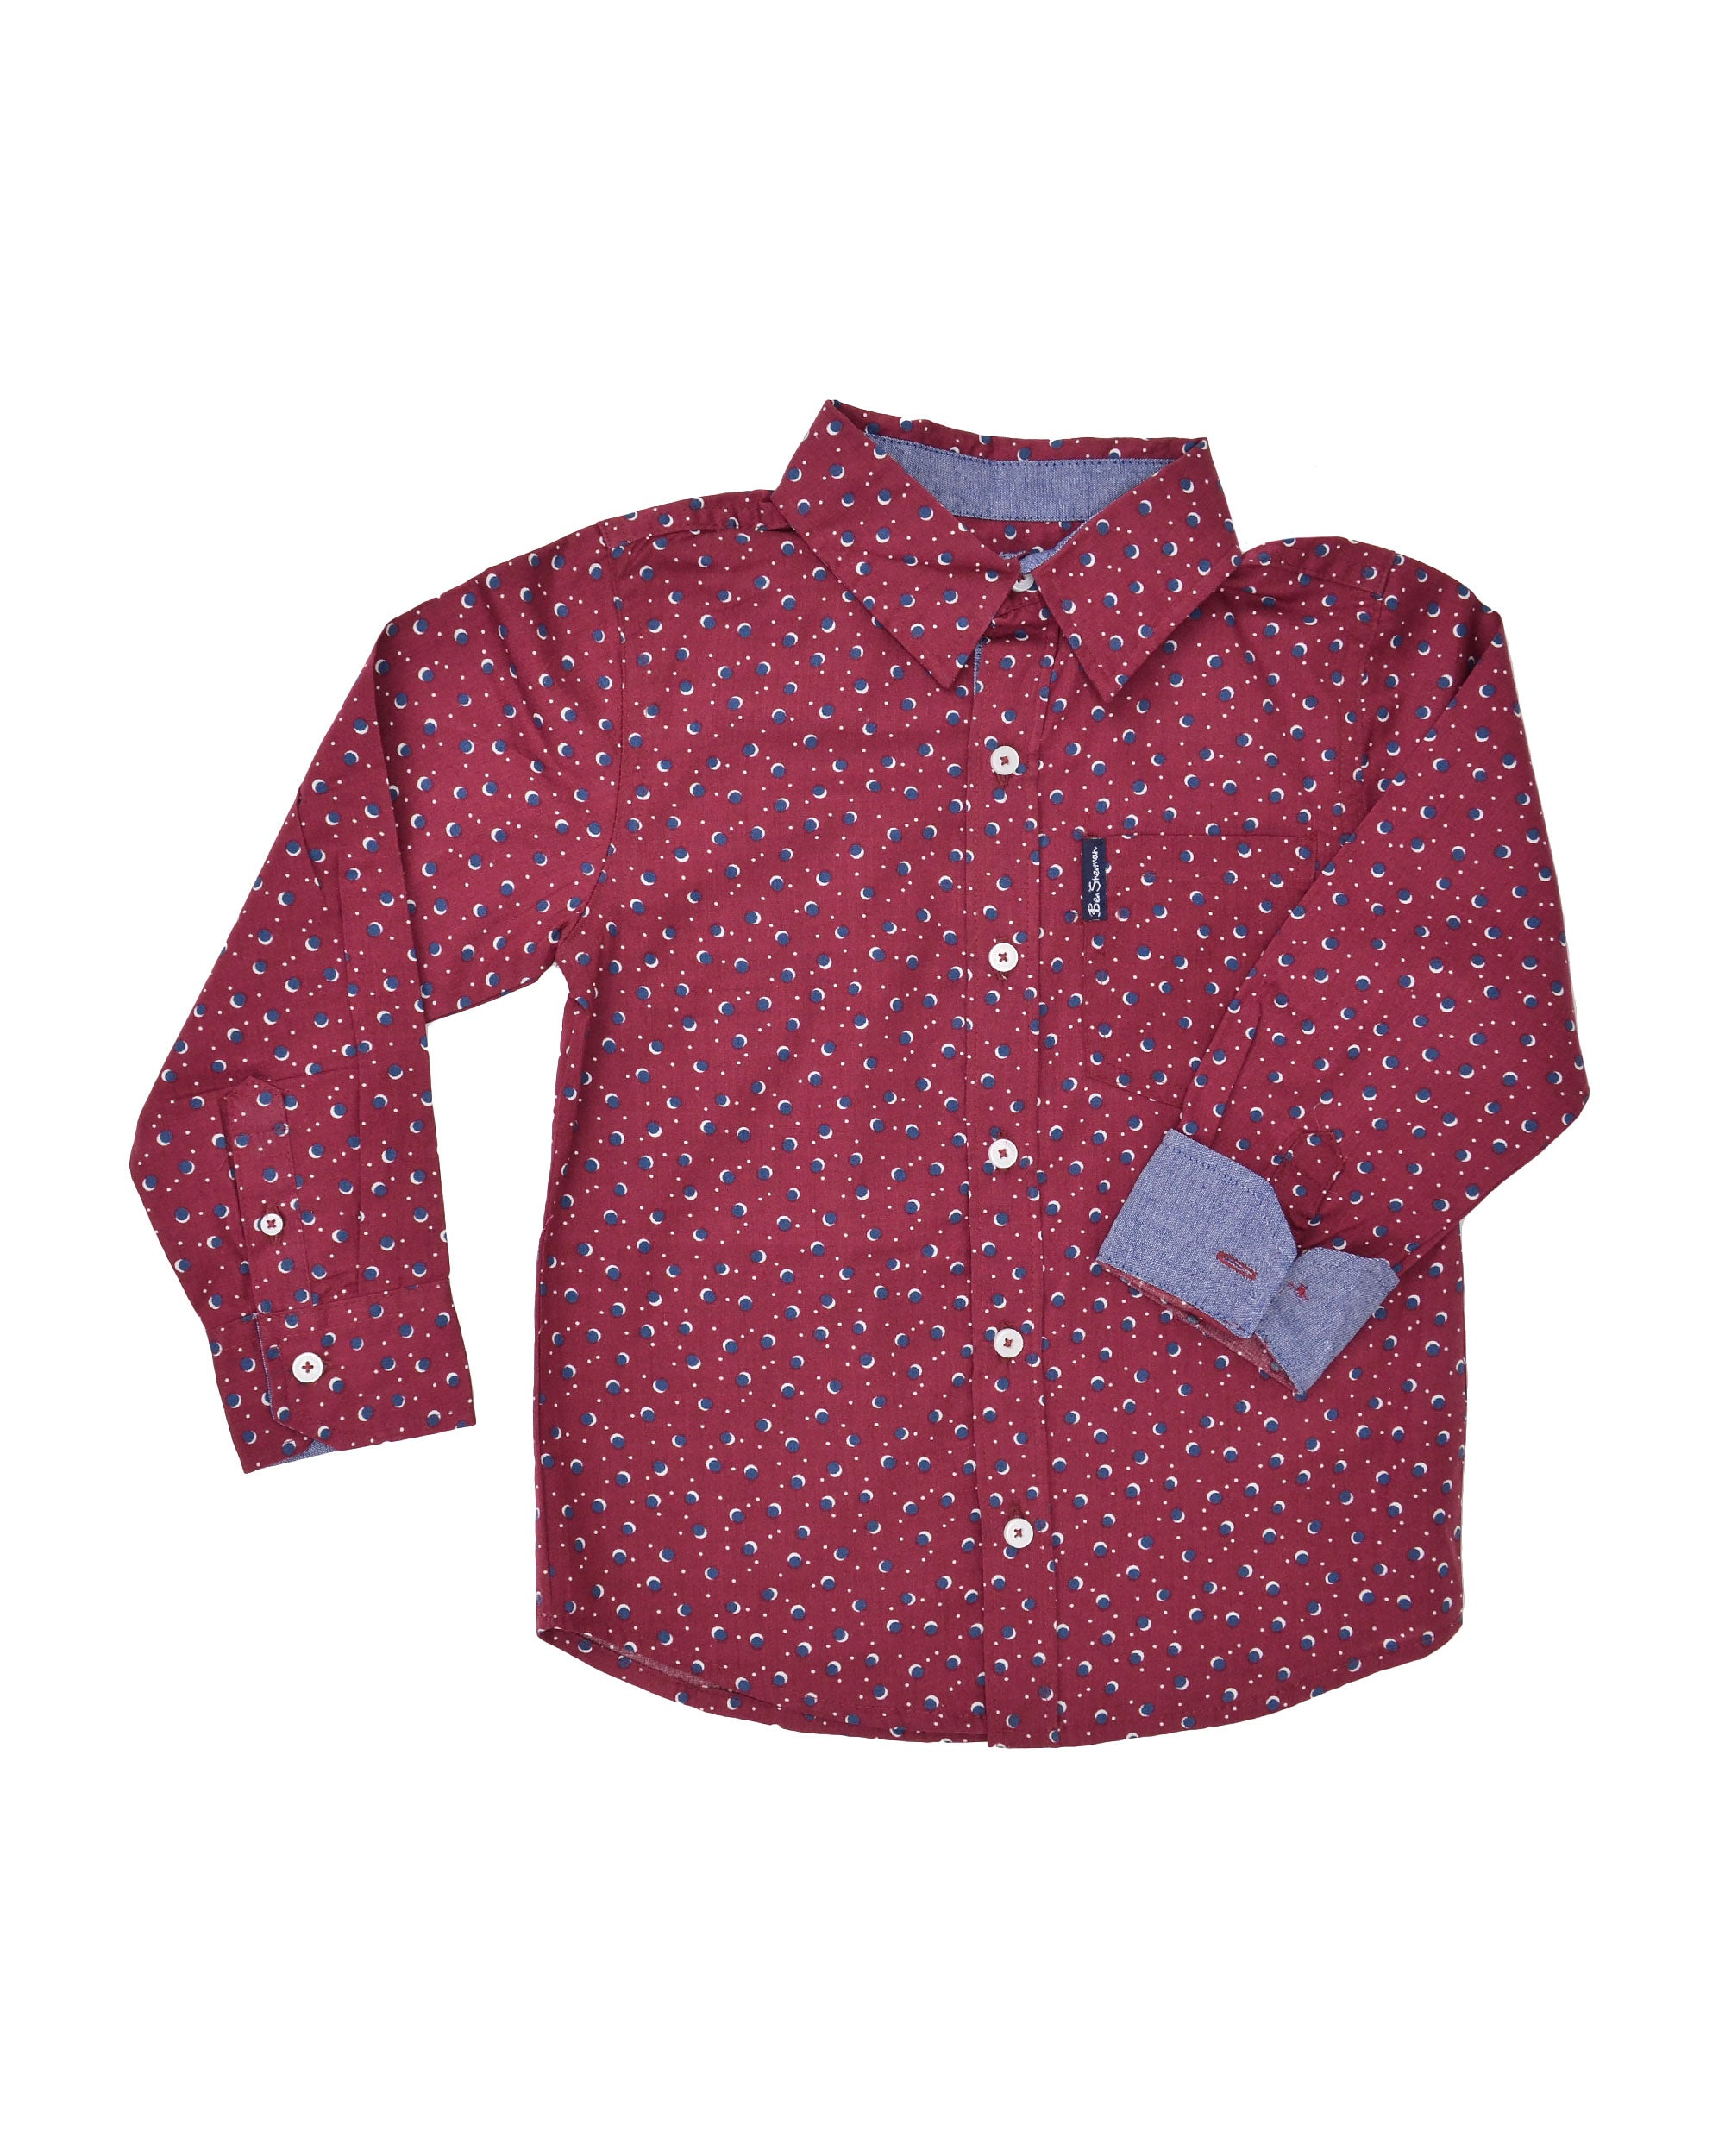 Boys' Red Button-Down Shirt with Navy Dot Pattern (Sizes 4-7)